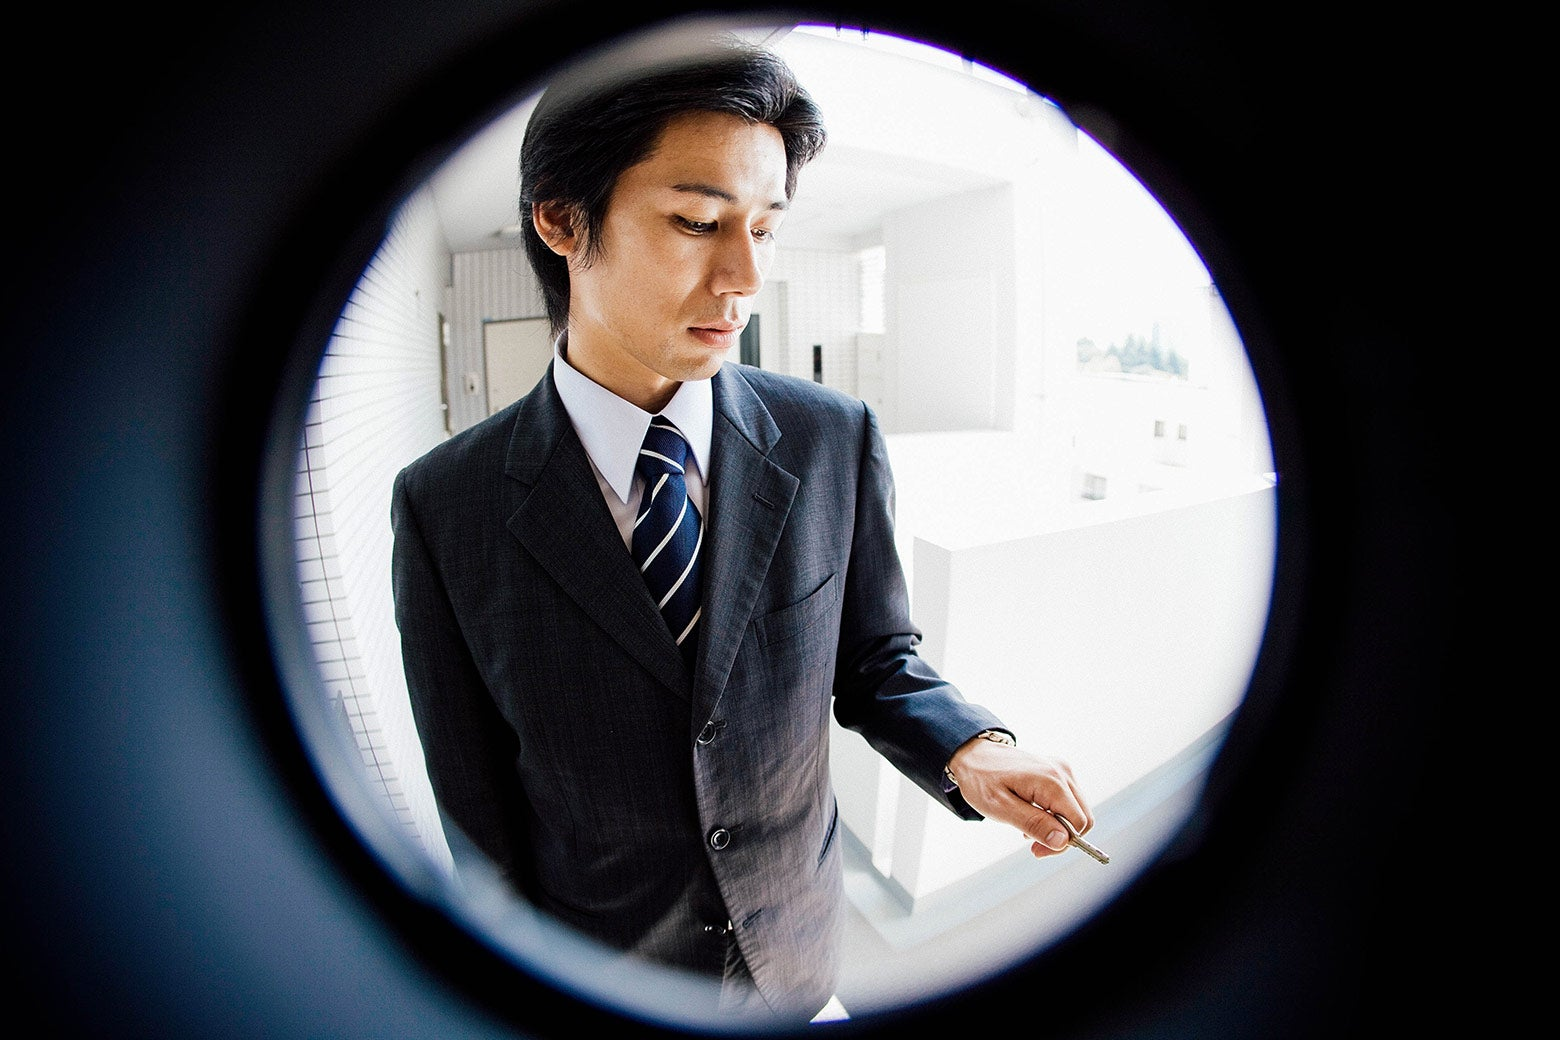 Fisheye peephole view of a man in a suit at the door.